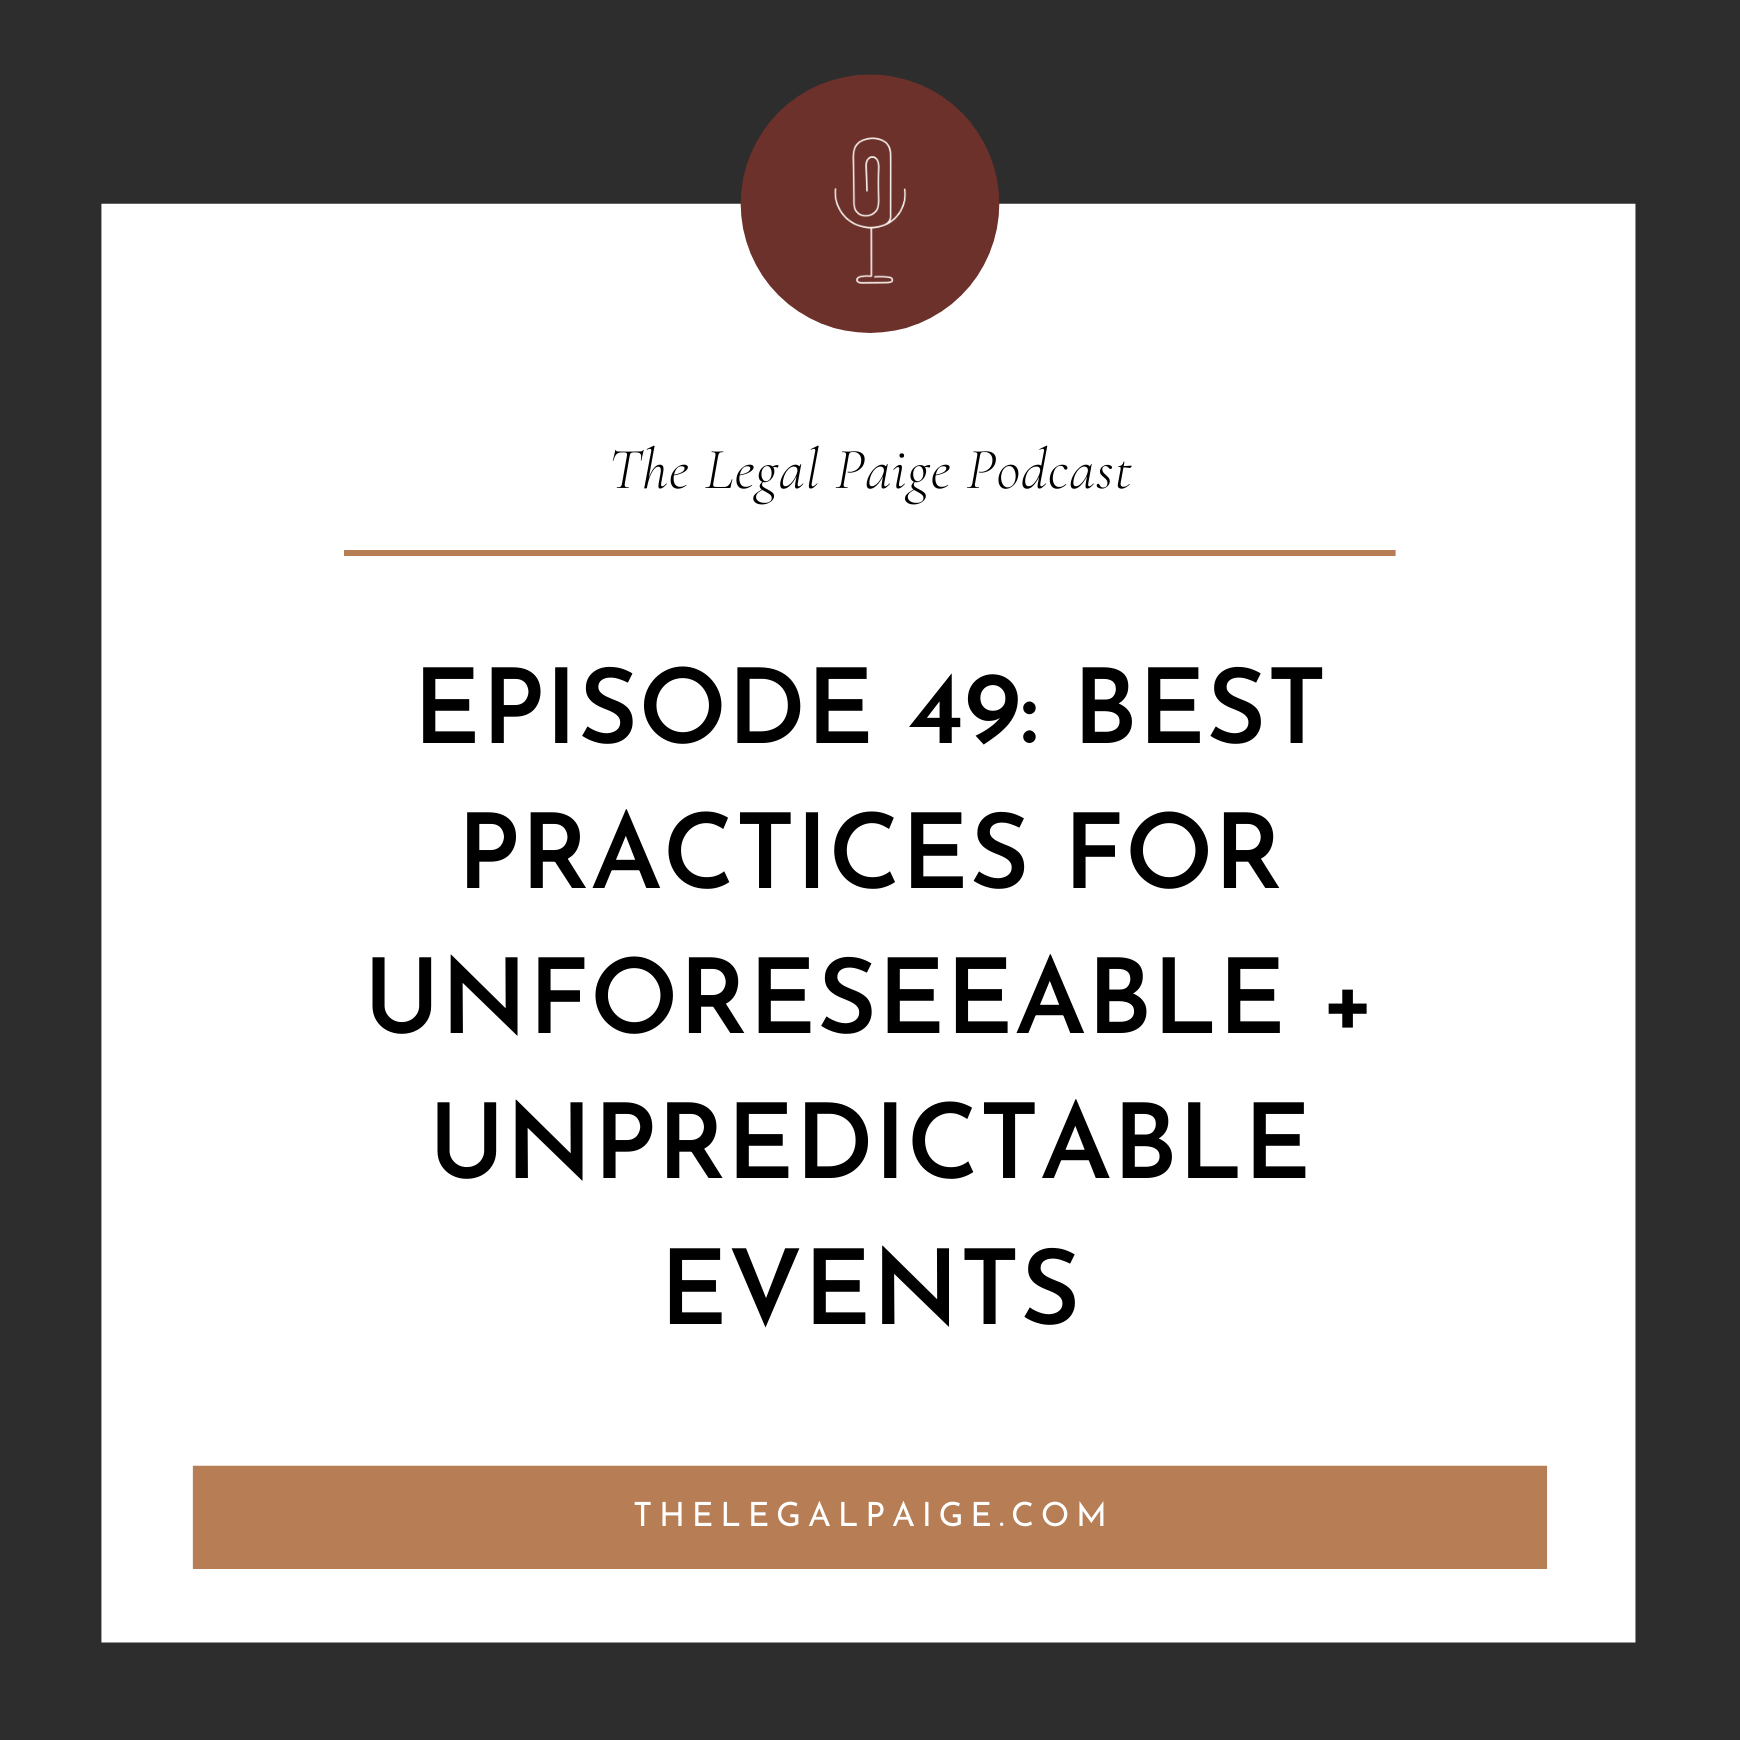 Episode 49: Best Practices for Unforeseeable, Unpredictable, and Impossible Events, and the Protection Clauses You NEED in Your Contracts